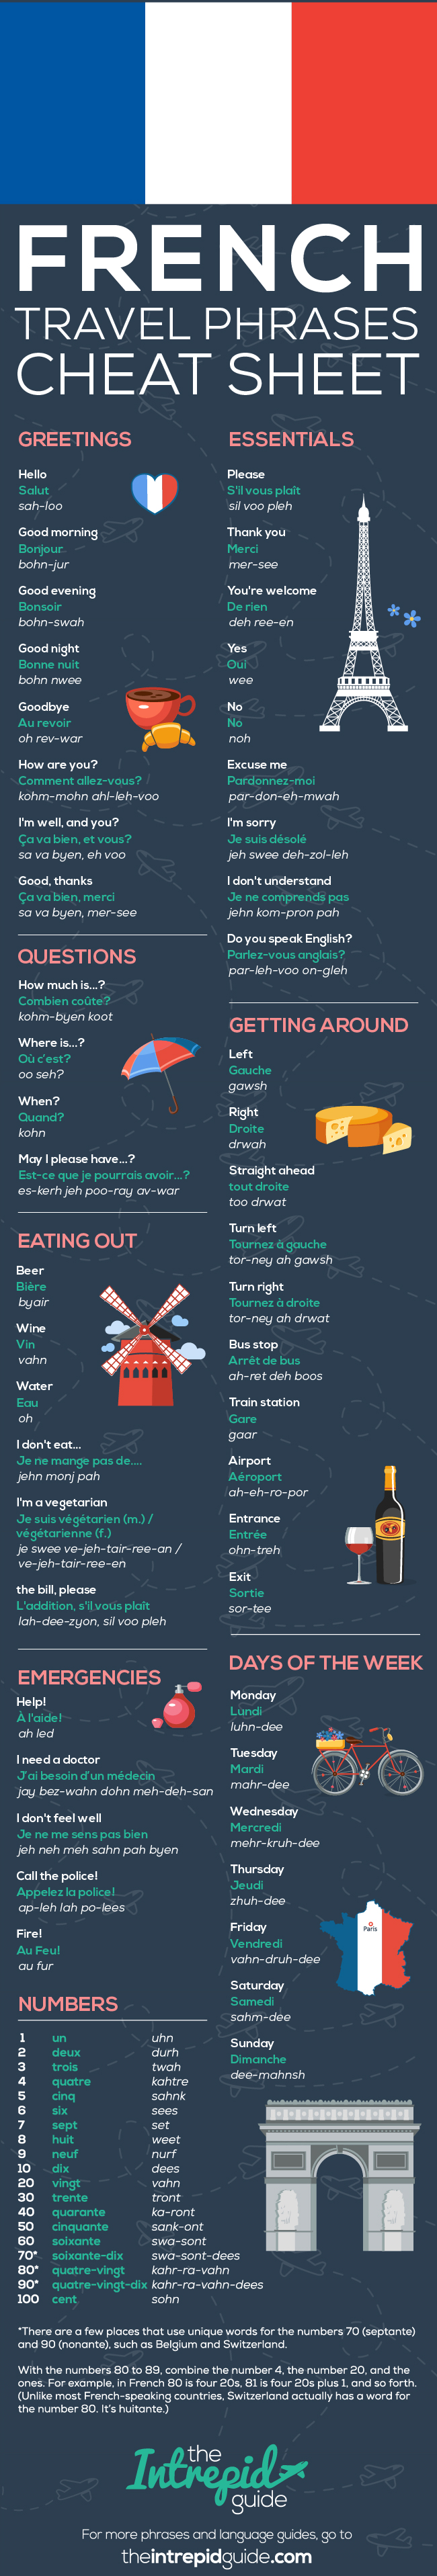 how to say common phrases in french